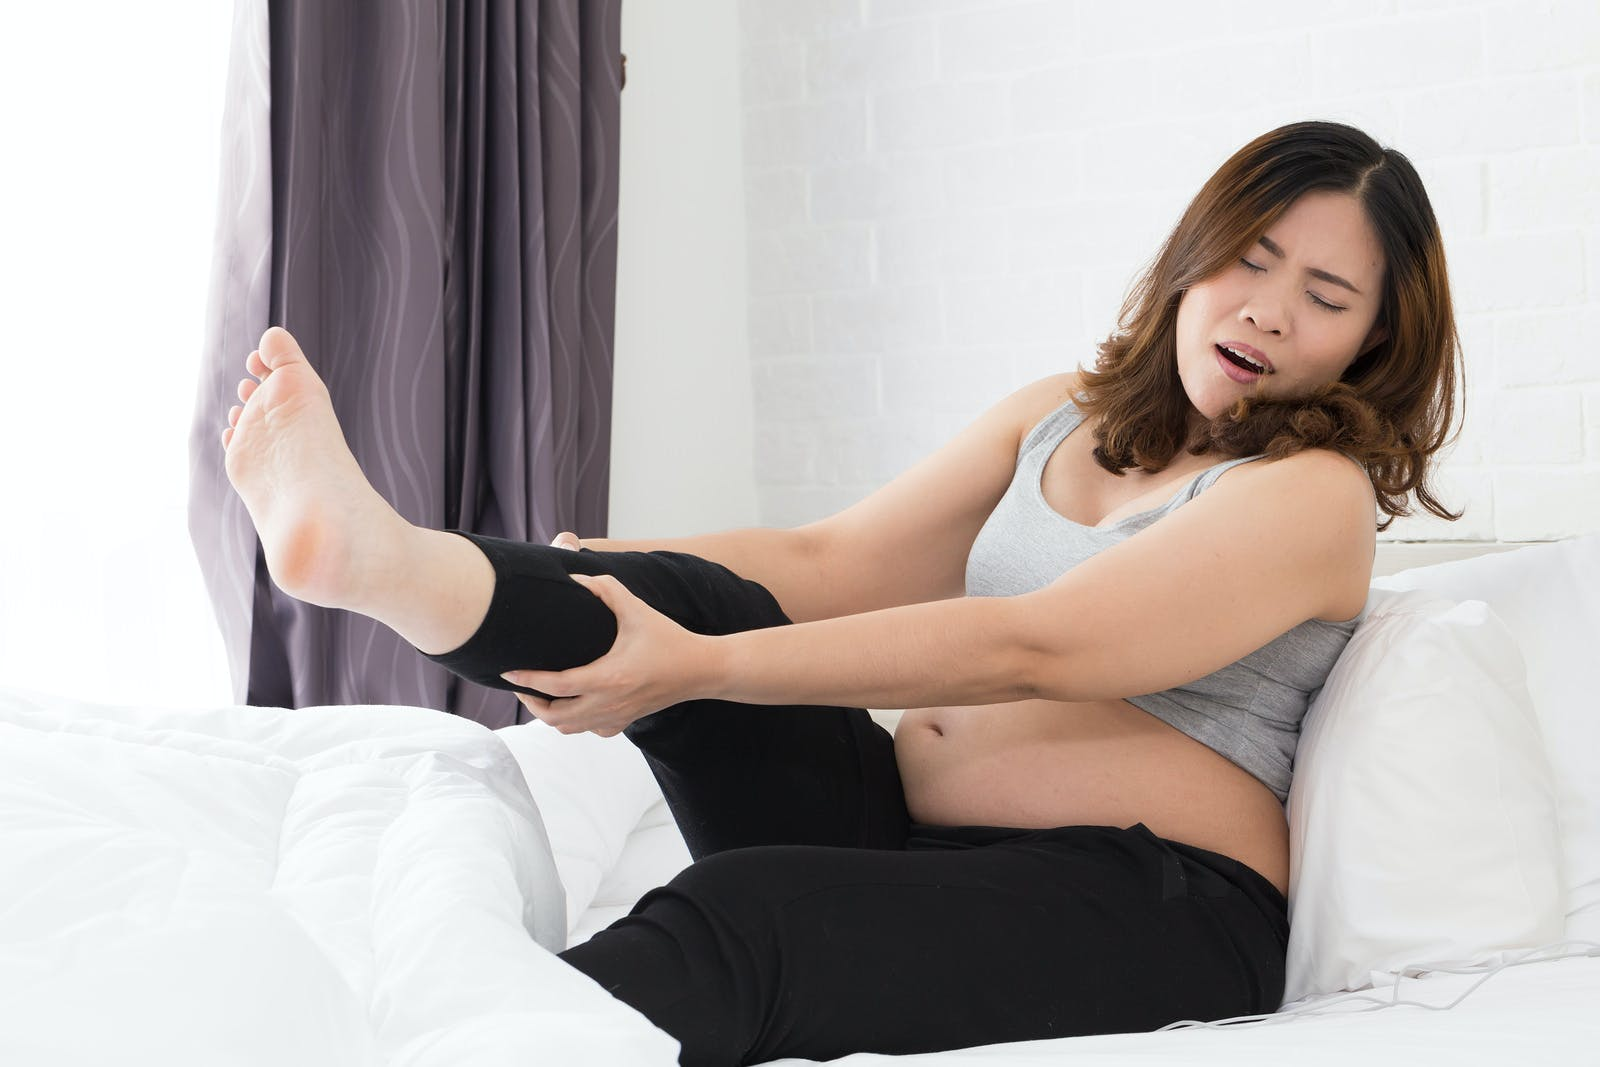 Pregnant women with cramp in leg on bed